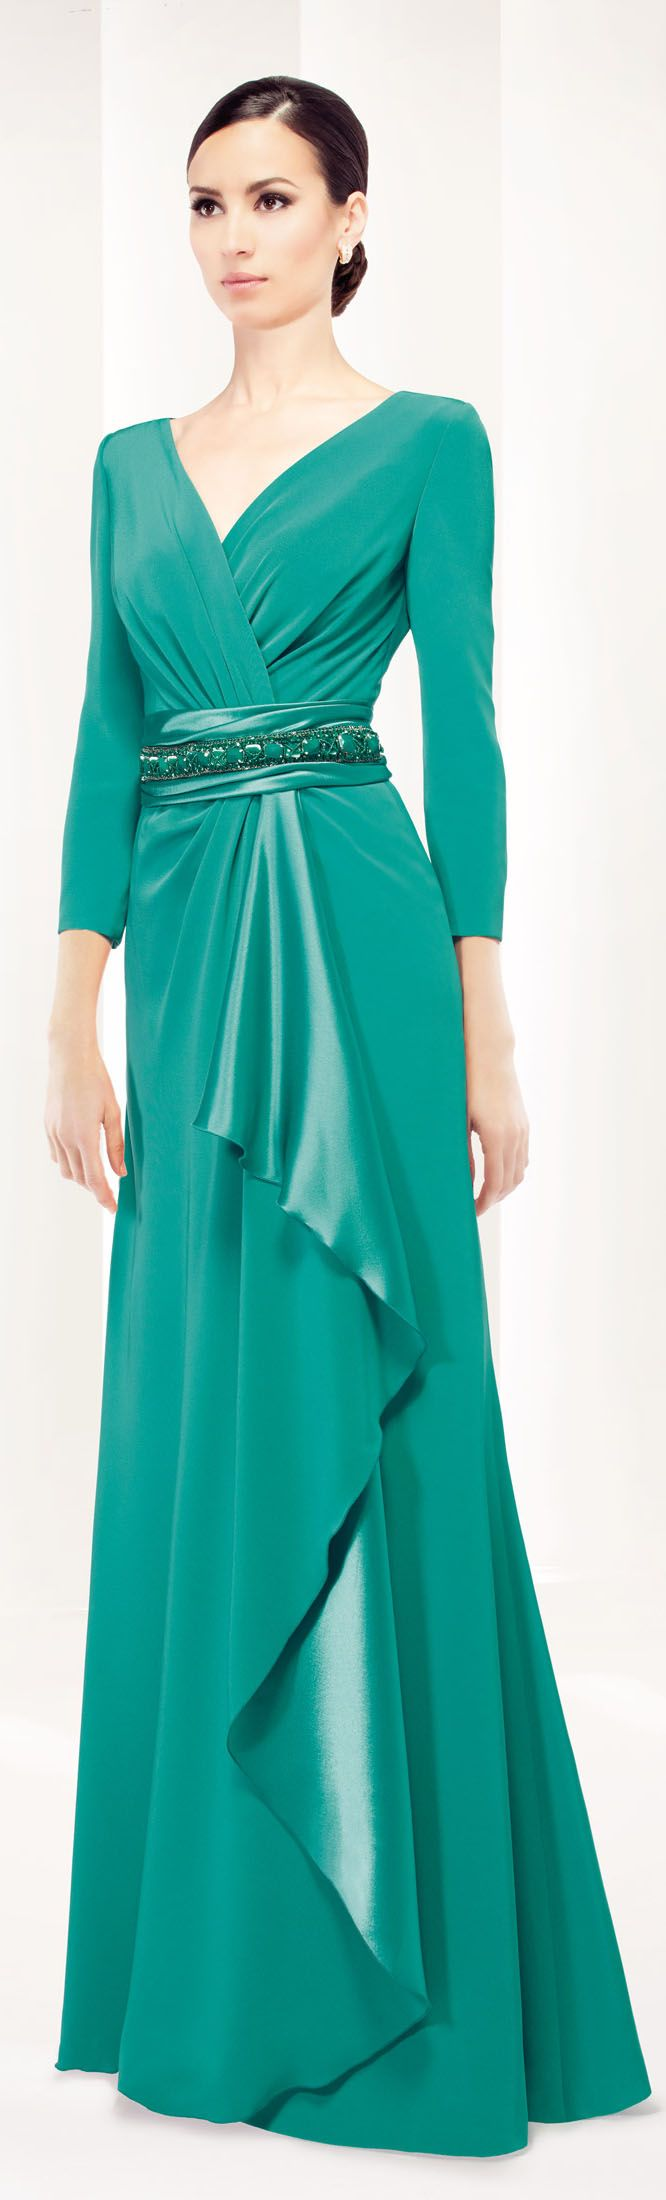 The Patricia Avendano Party Dresses 2015 Collection | Gorgeous Green ...